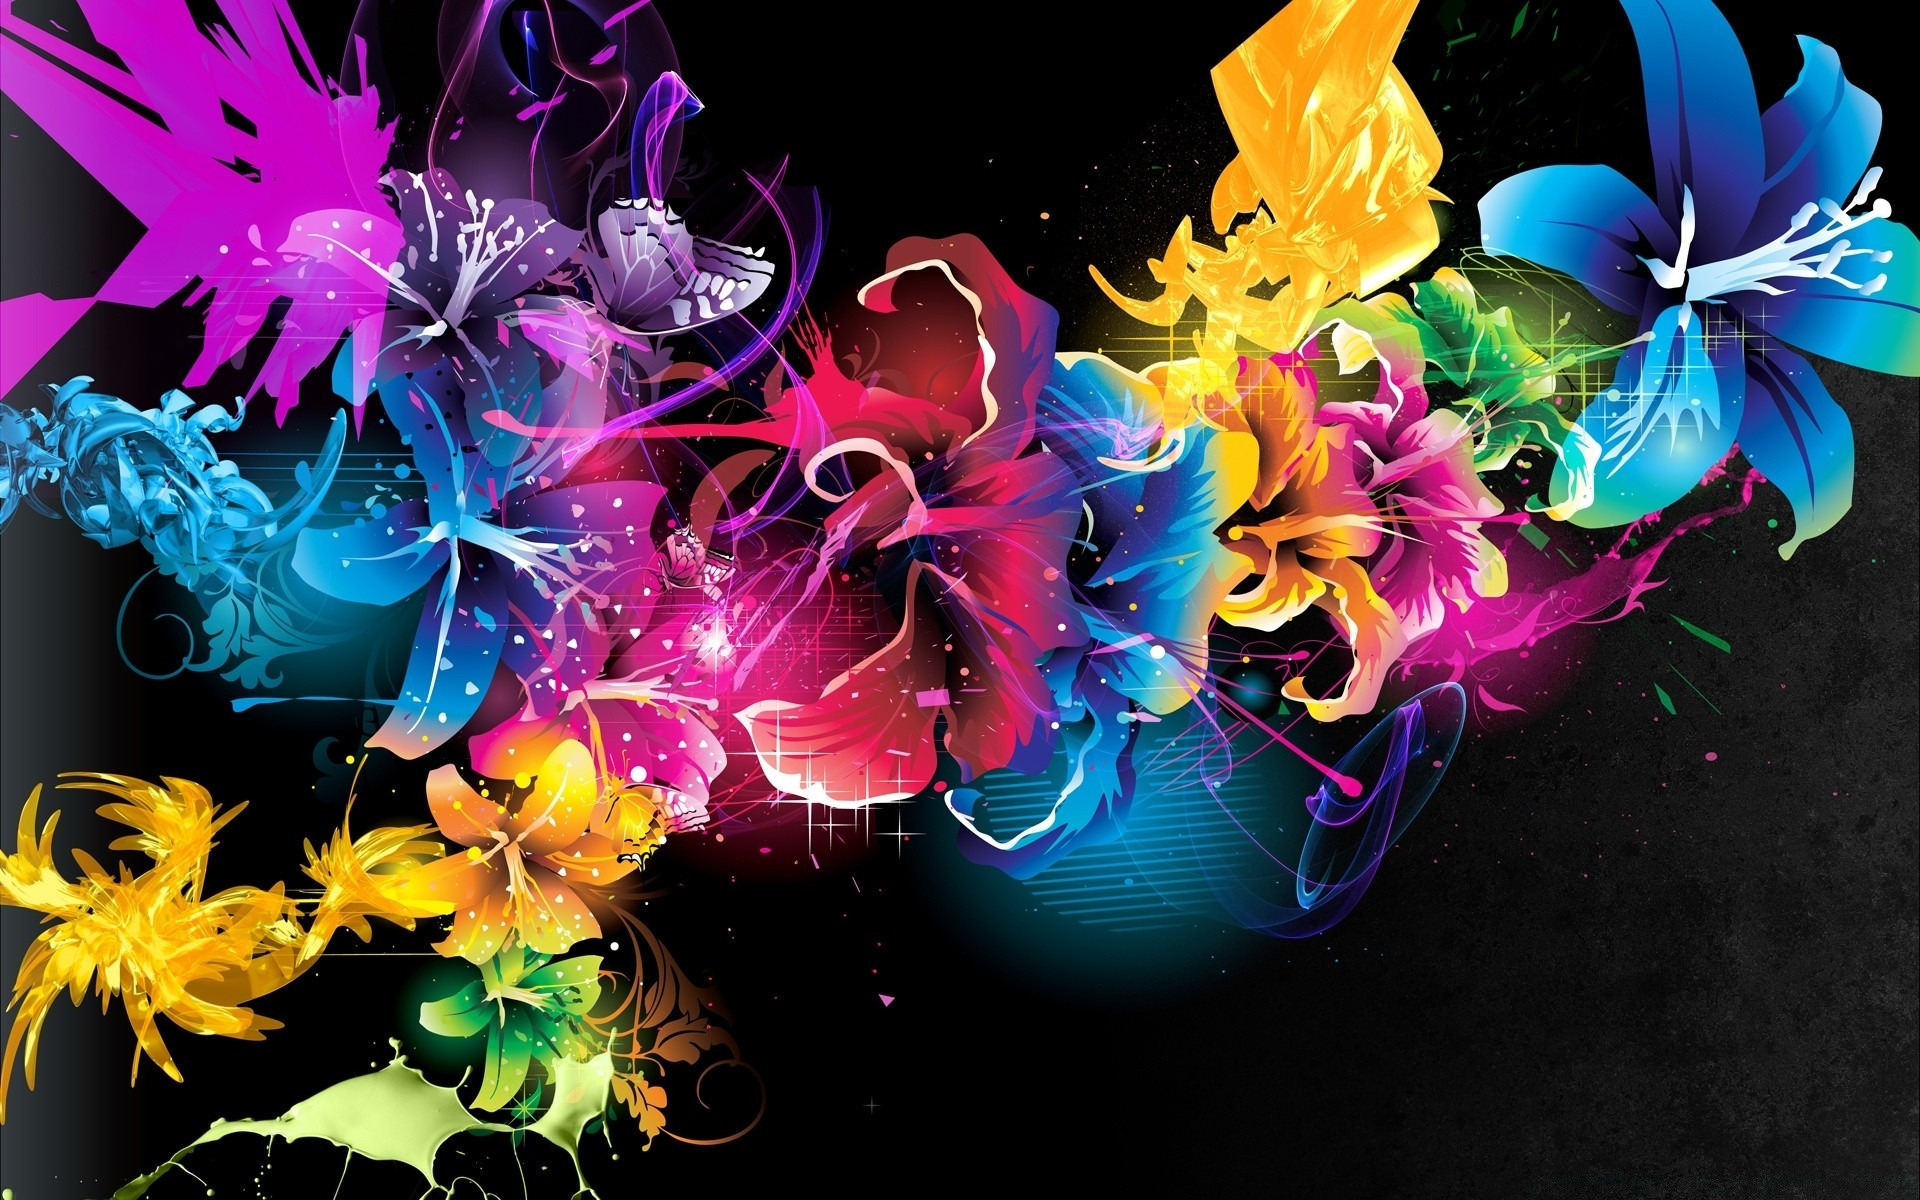 colorful flowers. desktop wallpapers for free.